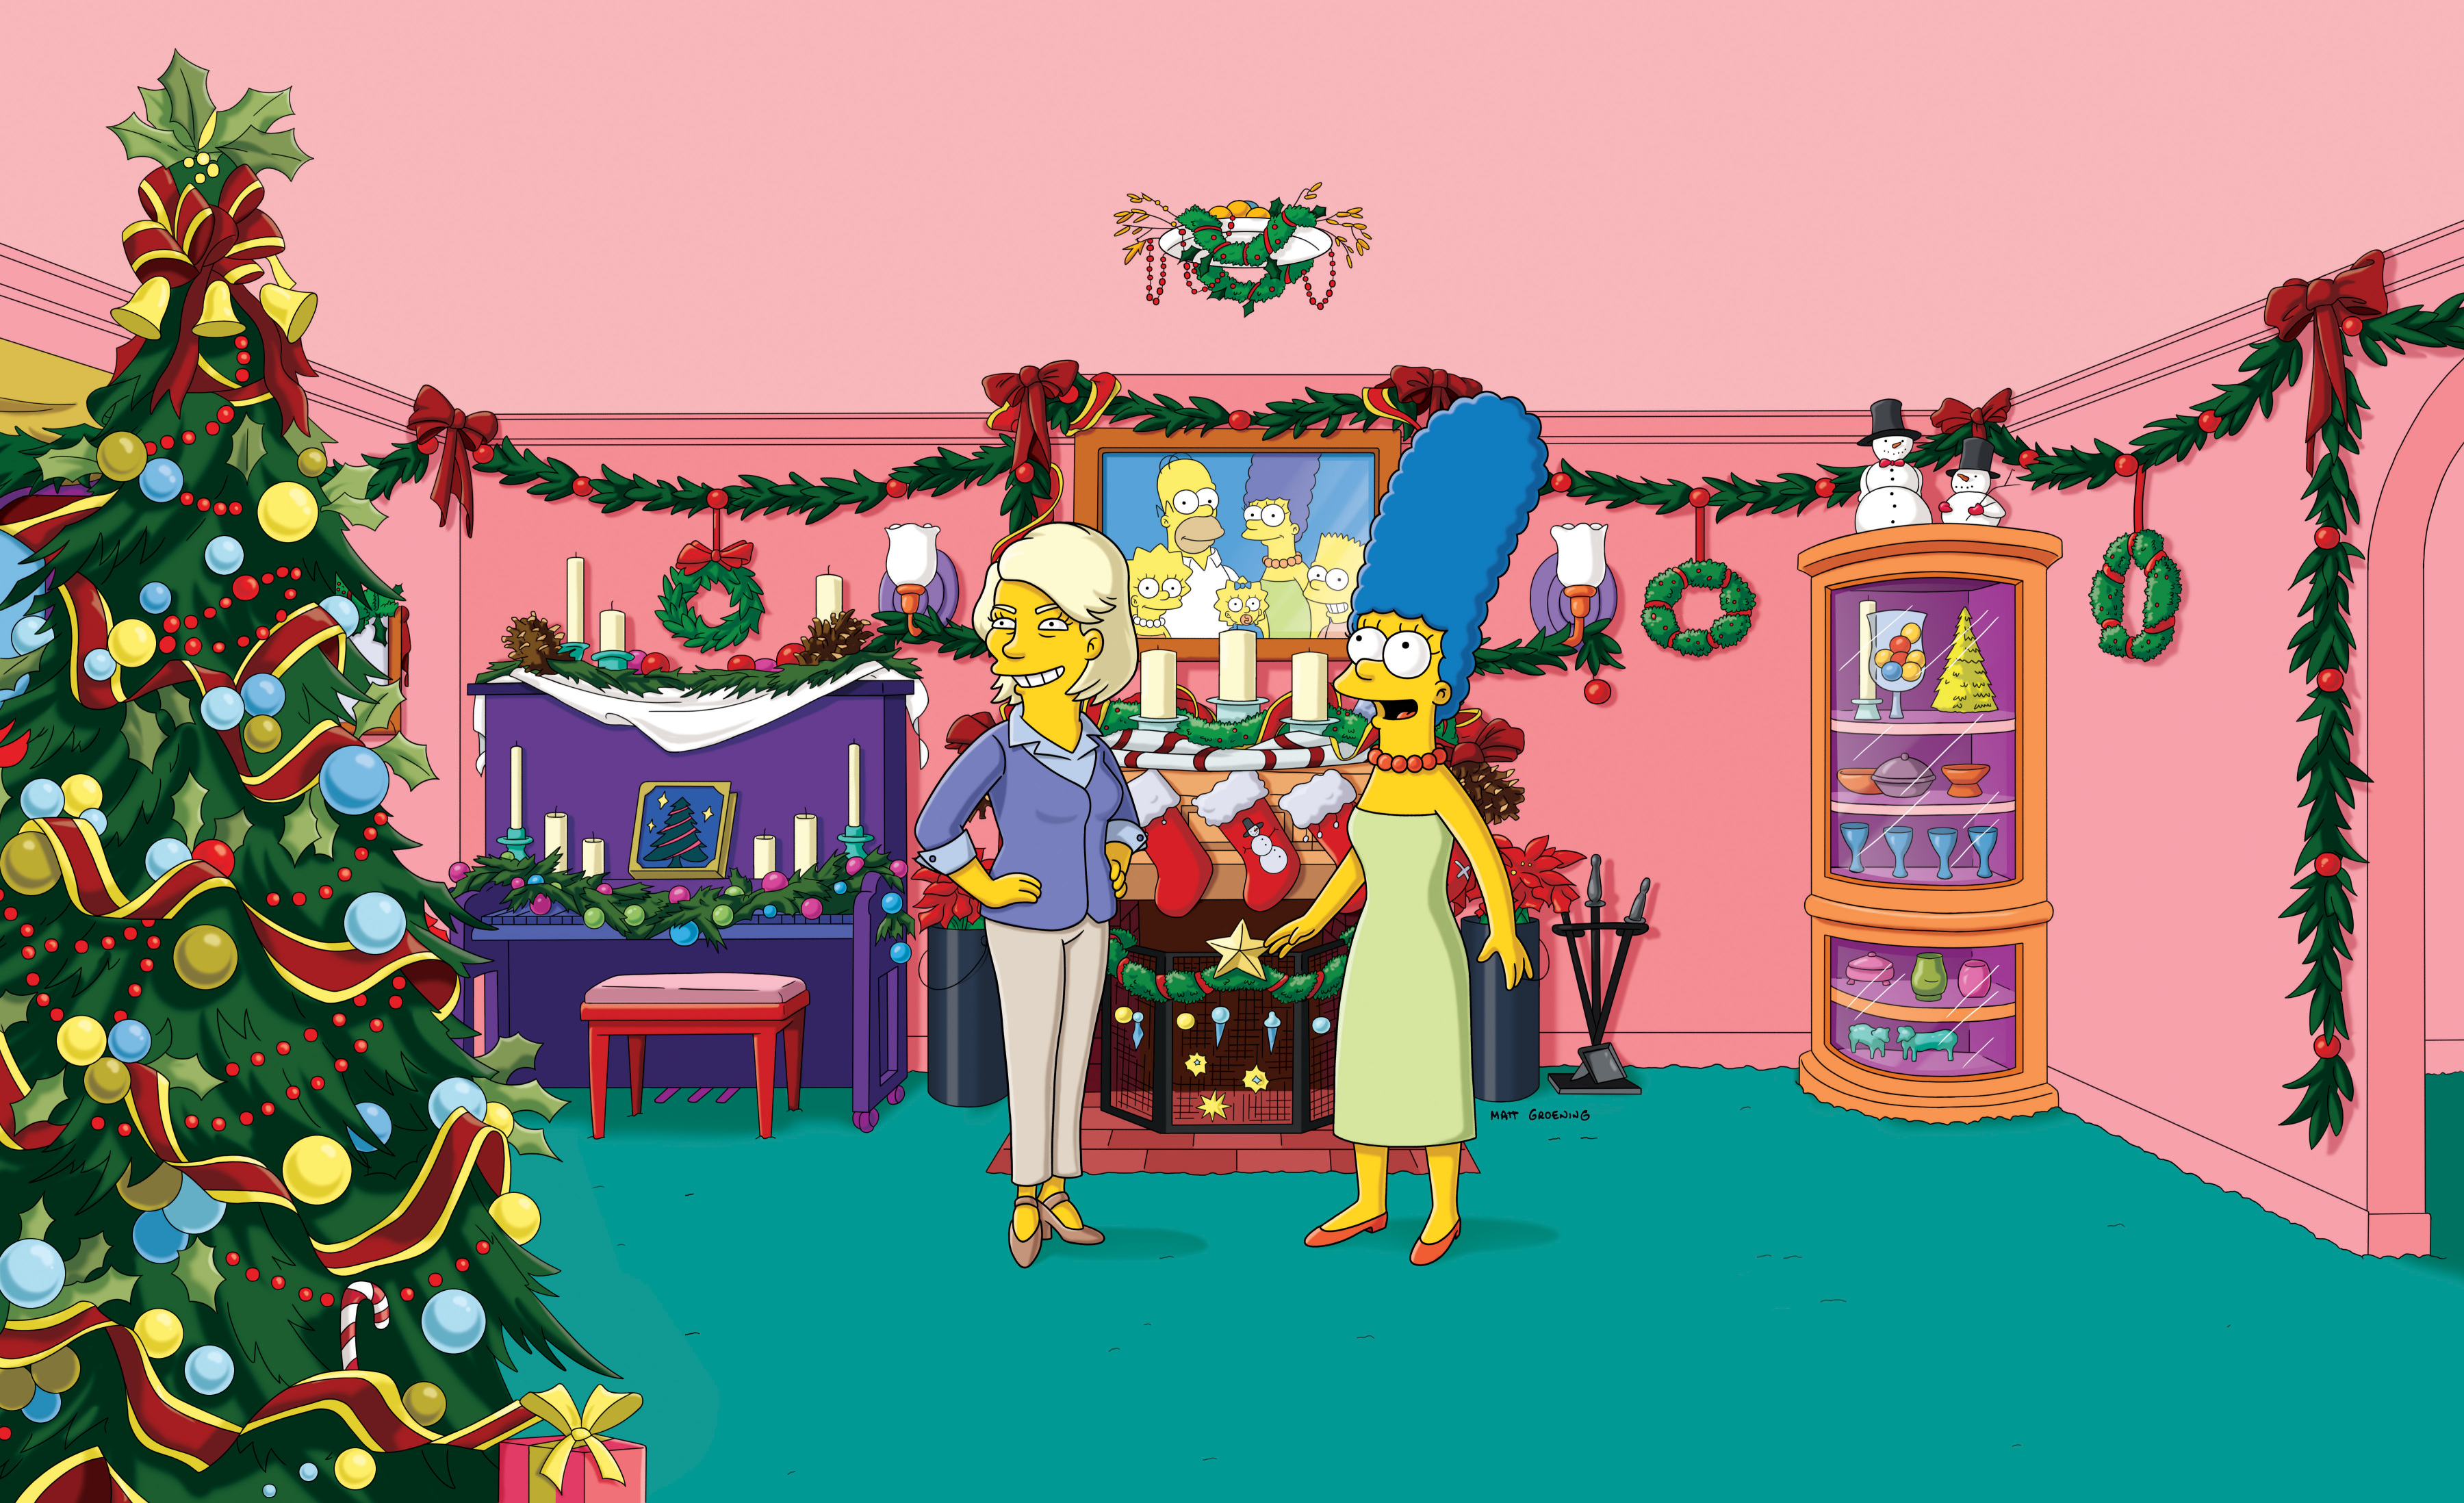 Simpsons Christmas g wallpaper | 3600x2196 | 184464 ...